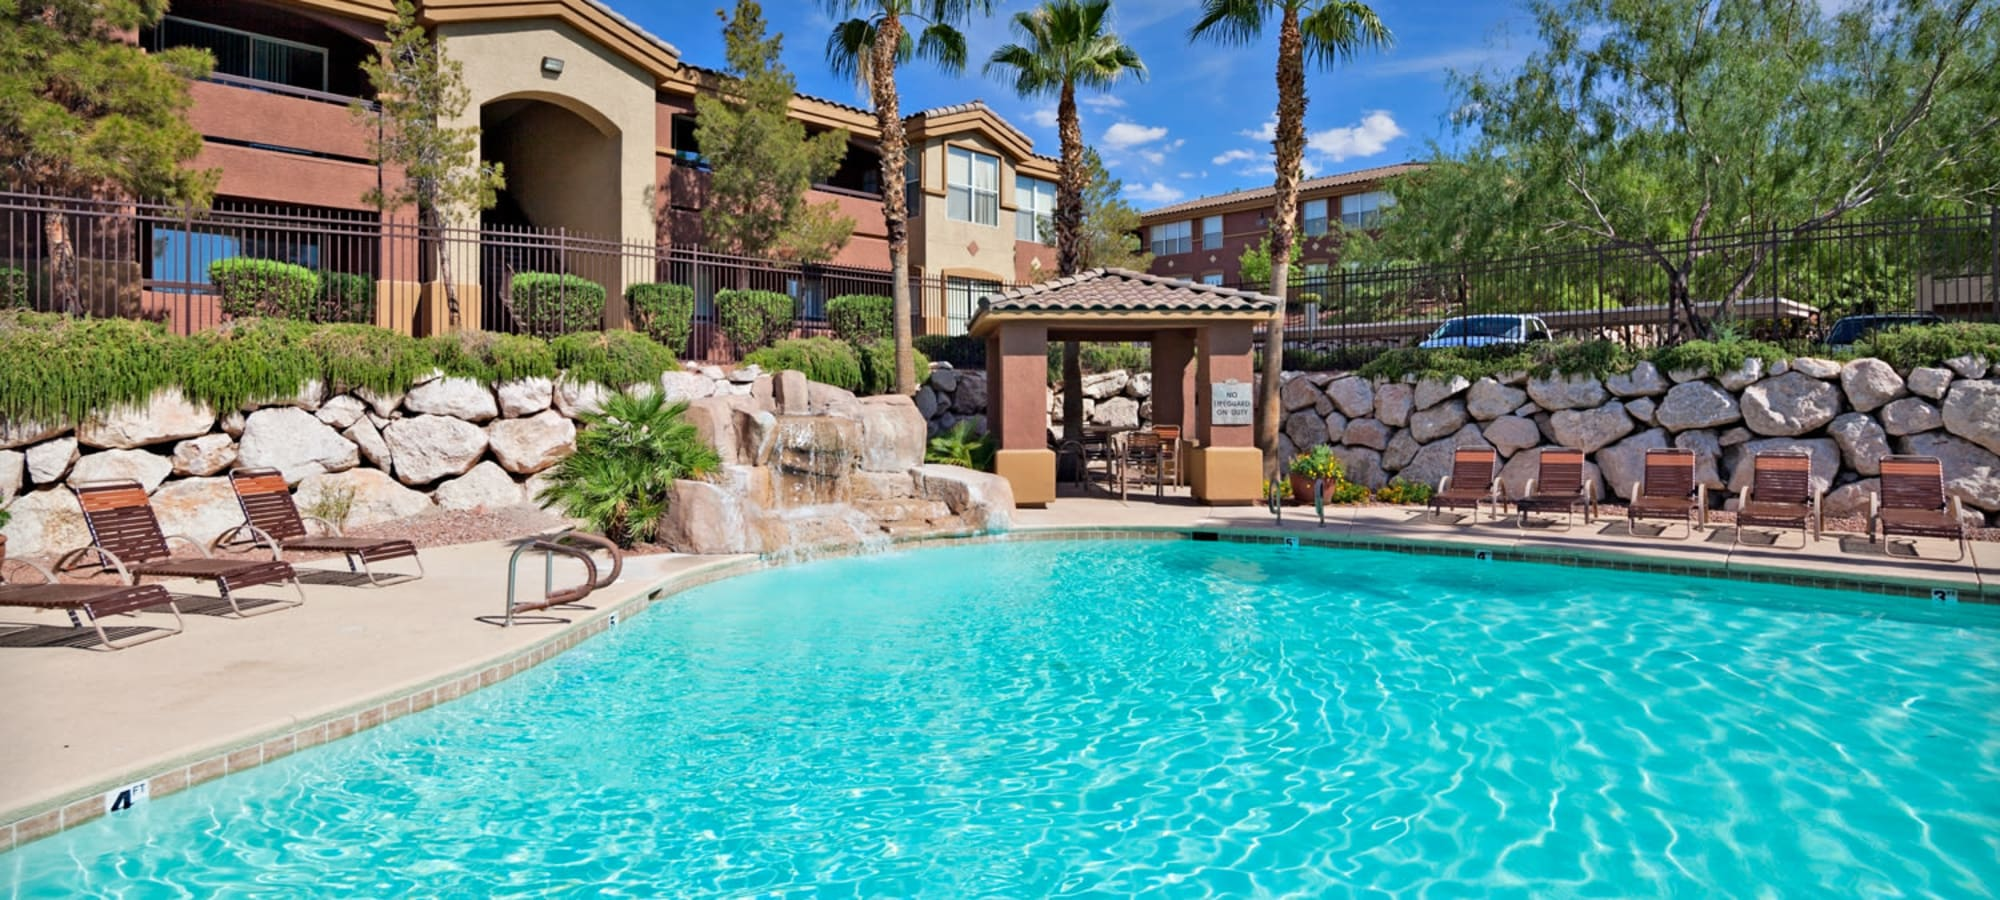 Swimming pool in Henderson, Nevada at Allegro at La Entrada